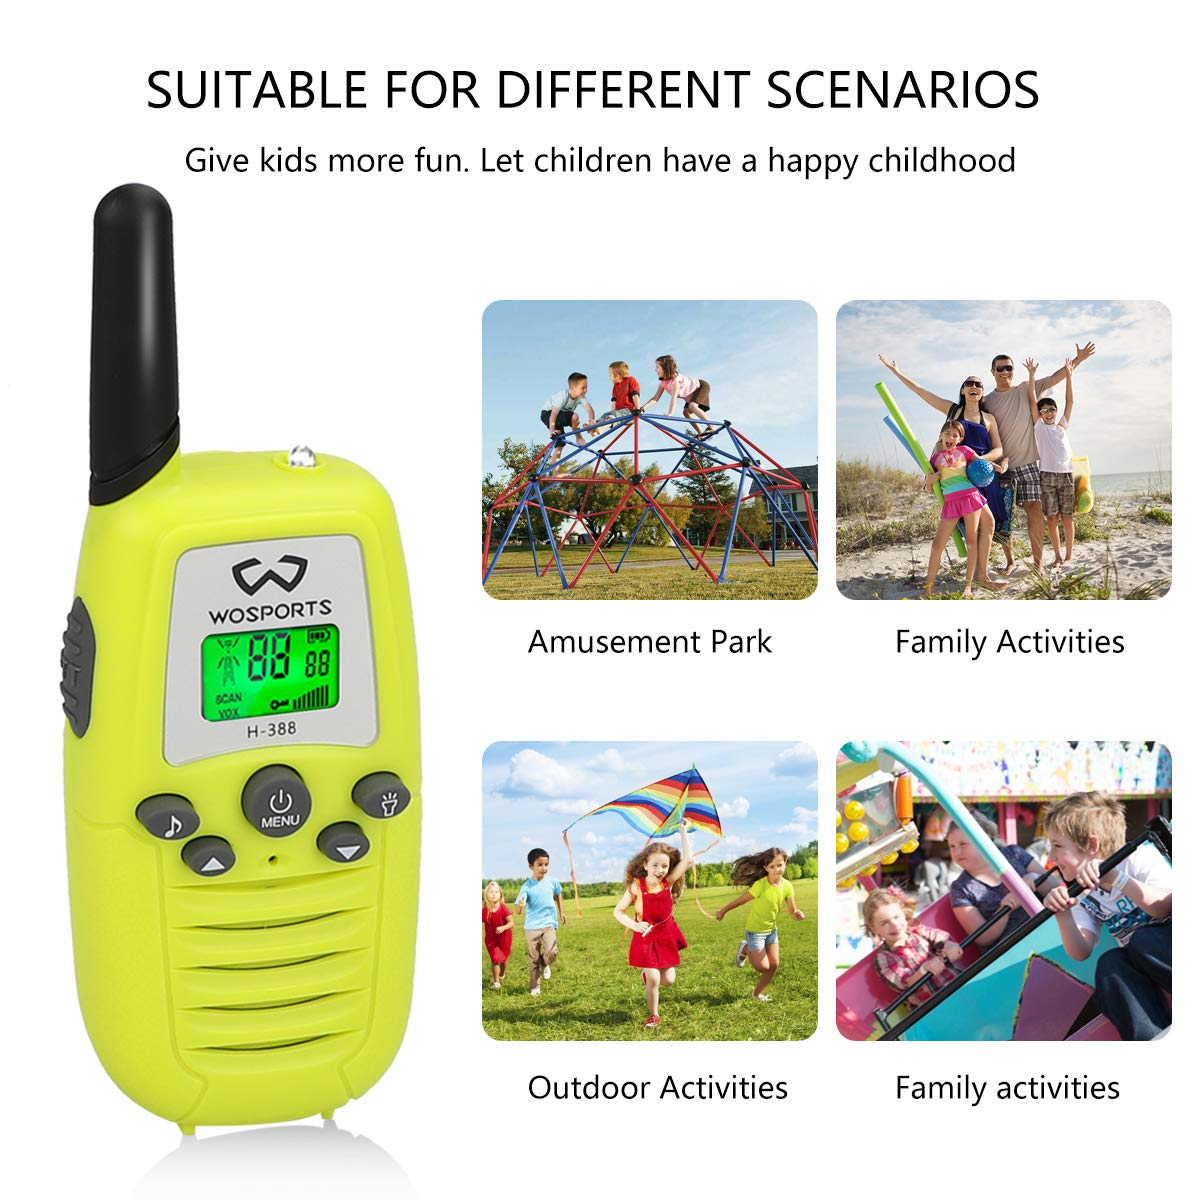 WOSPORTS Kids Walkie Talkies, 3 Pack Two Way Radios with Belt Clip, 3 KM Range Children Toy for Outdoor Adventures Game, Camping, Hiking by WOSPORTS (Image #6)